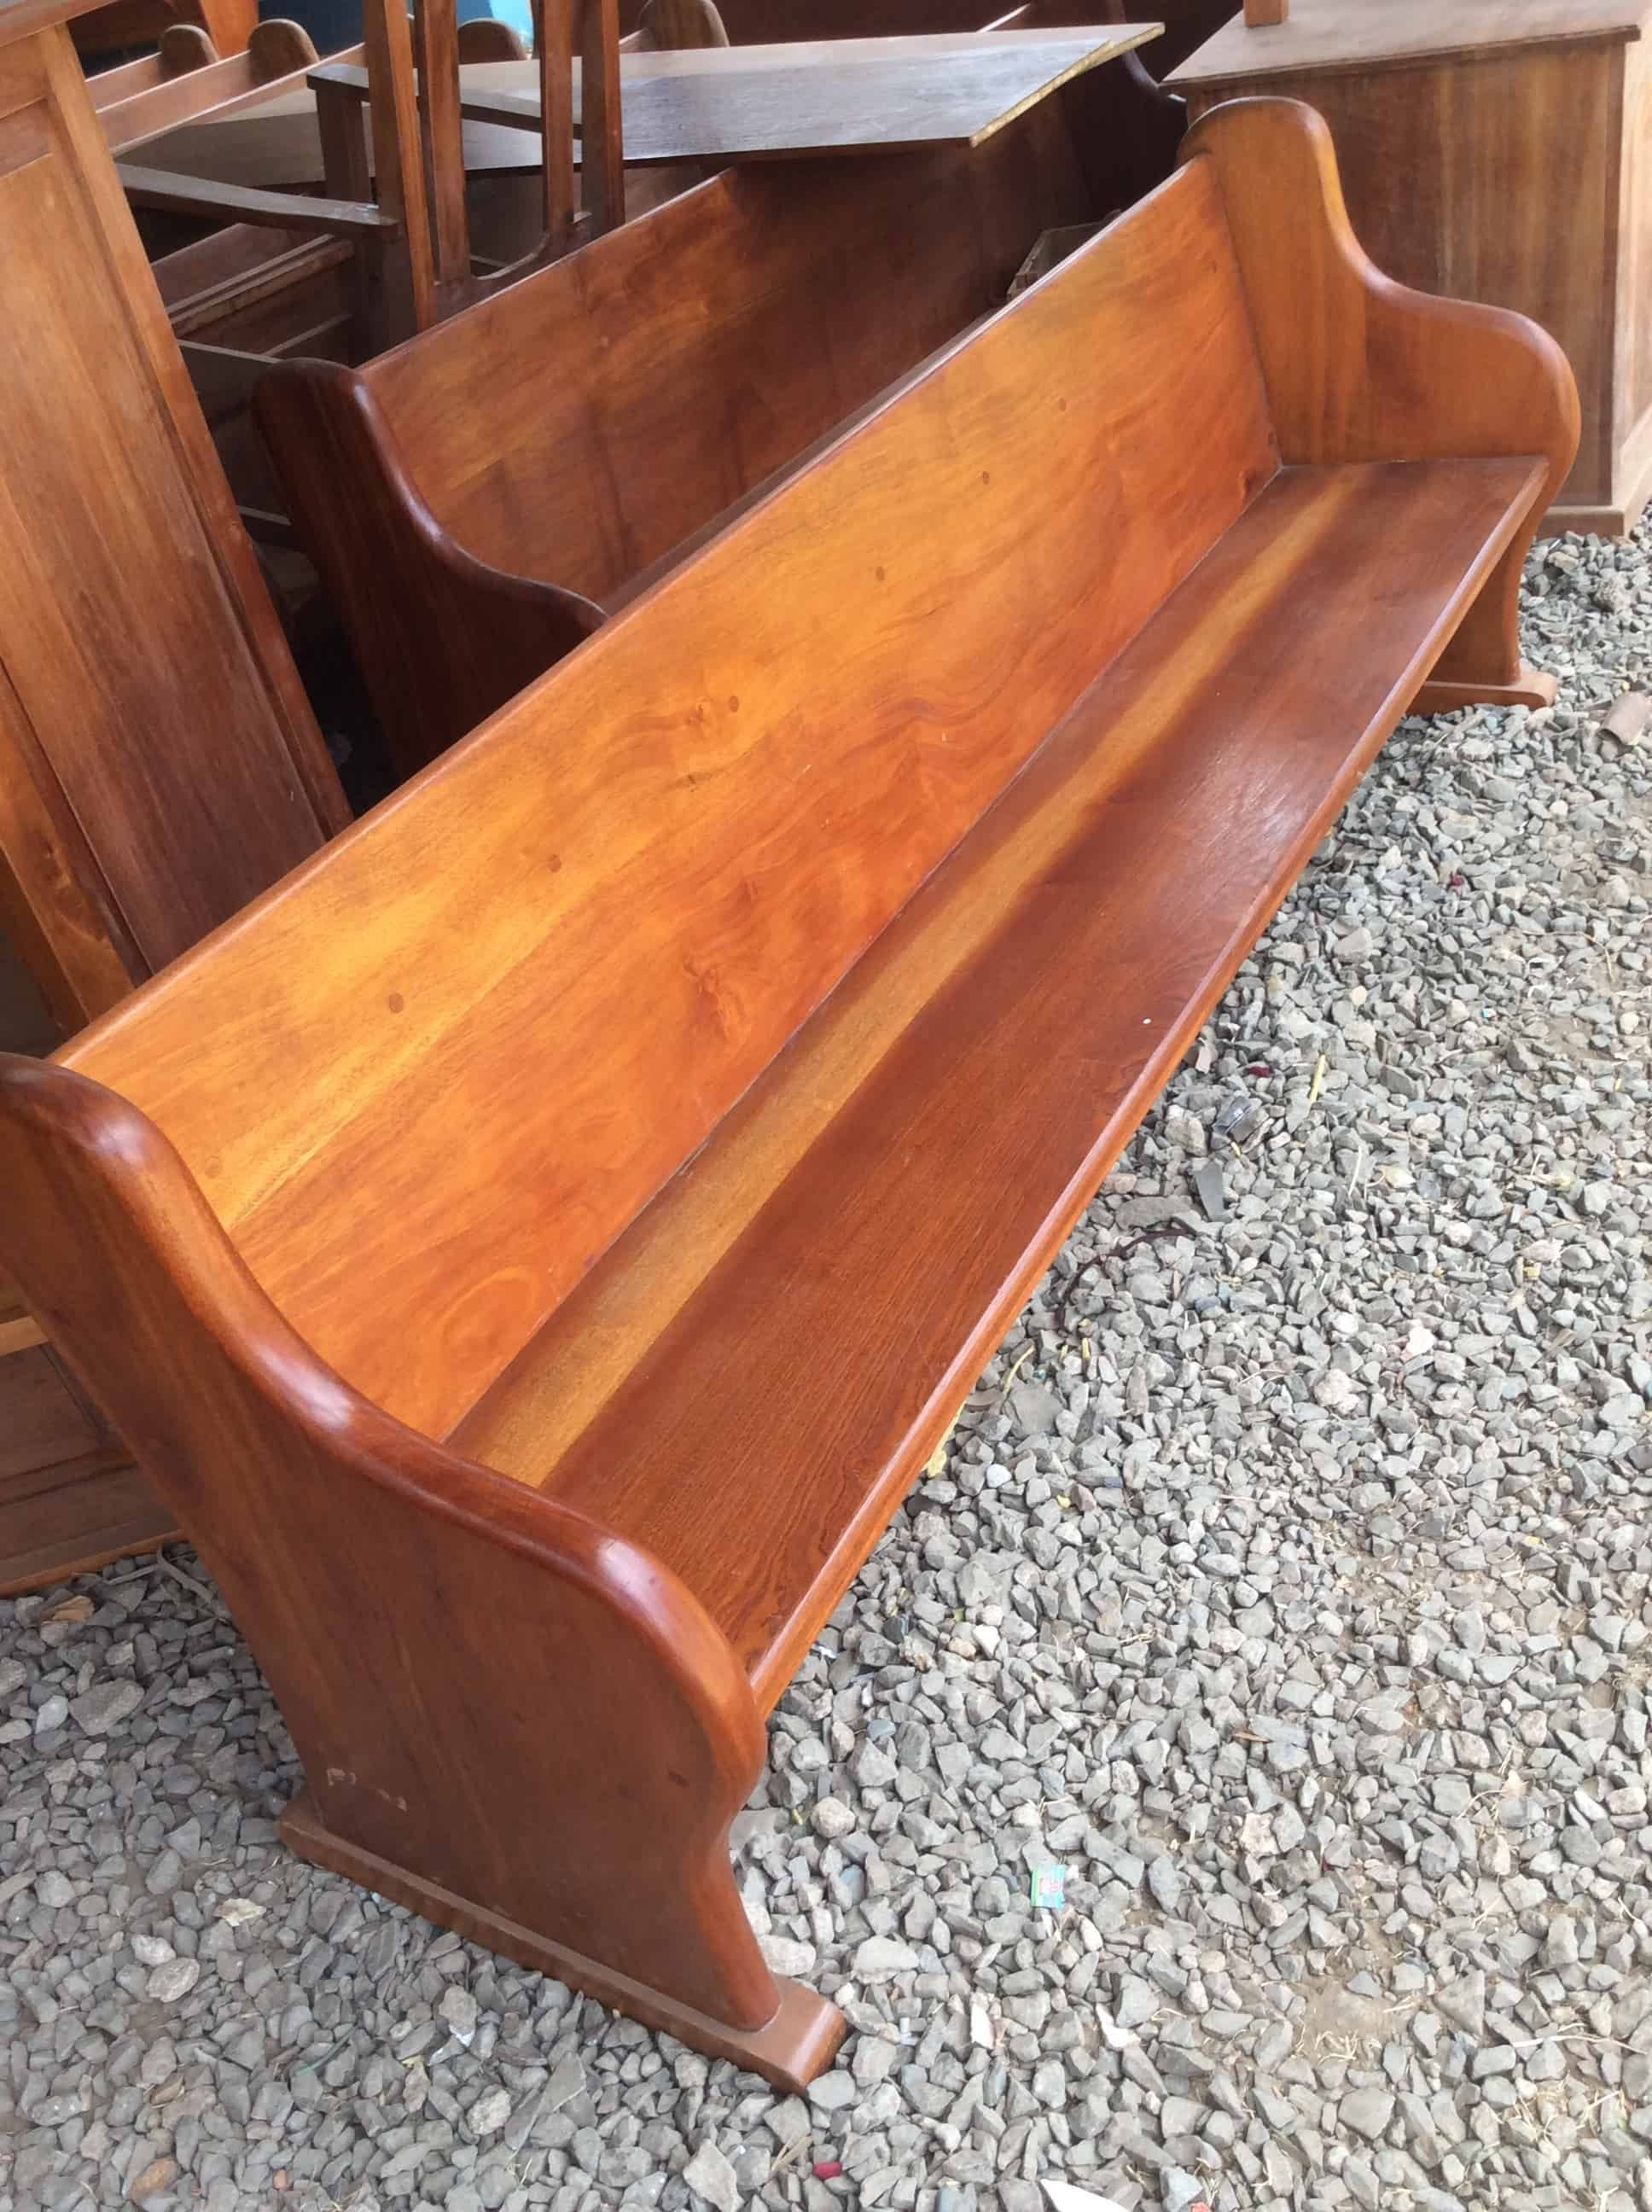 MAHOGANY CHURCH PEWS WITH QUALITY FINISH ON TIME AND WITH QUALITY